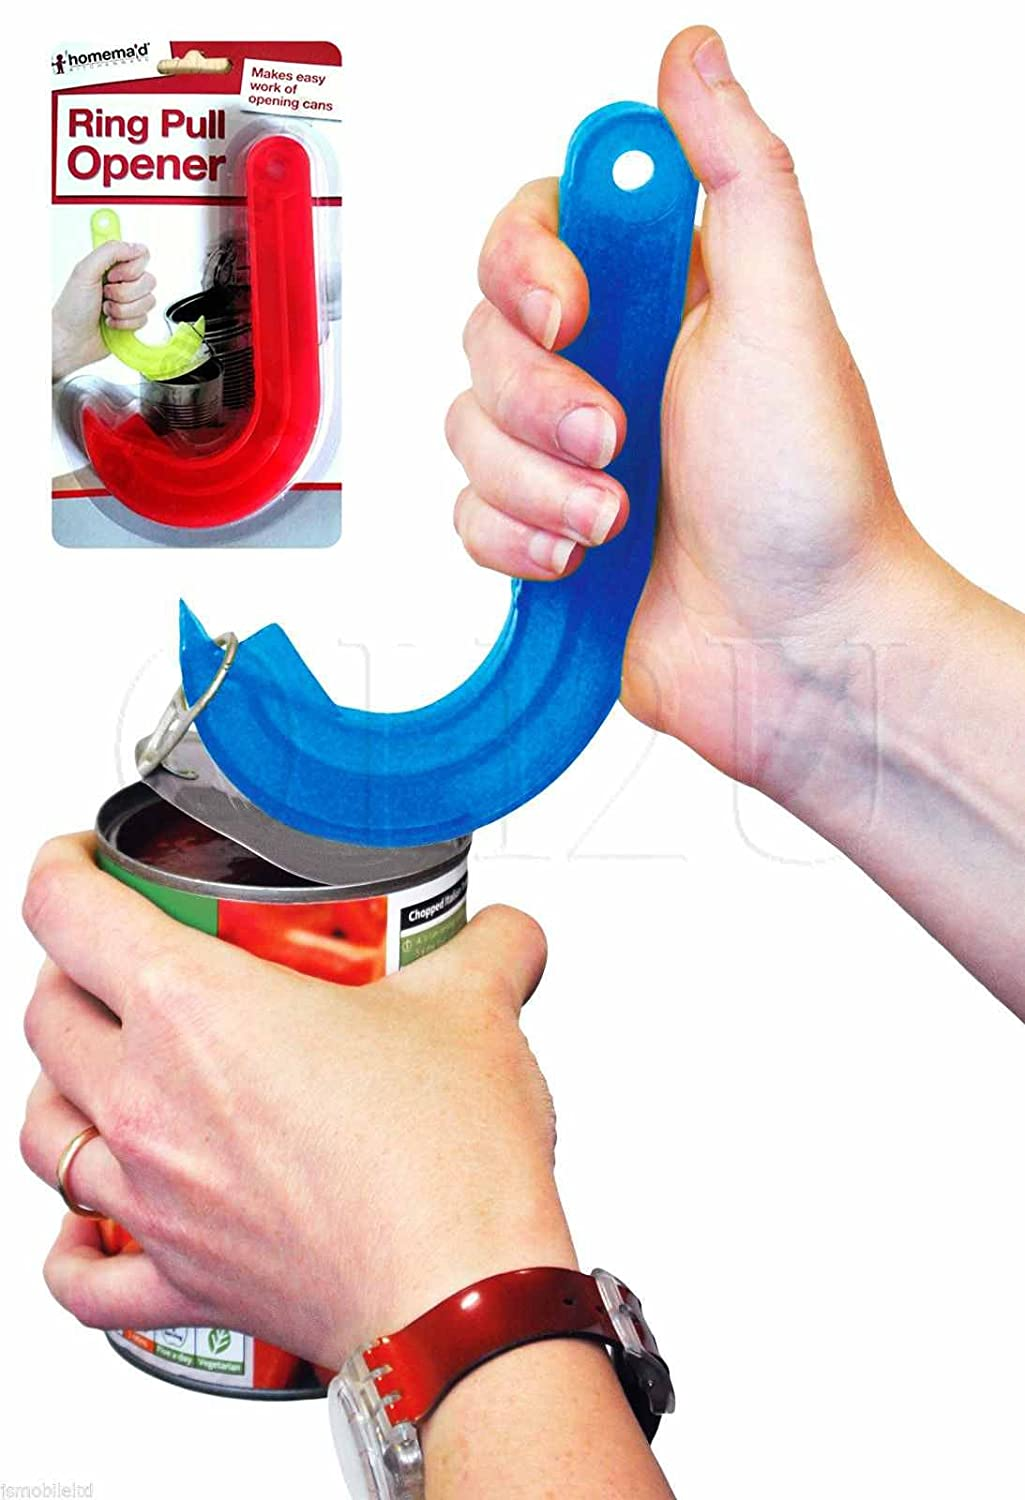 Dpny JAR CAN RING PULL OPENER GRIPPER DISABILITY AIDS TIN DRINK LID PULLER EASY EDGE home